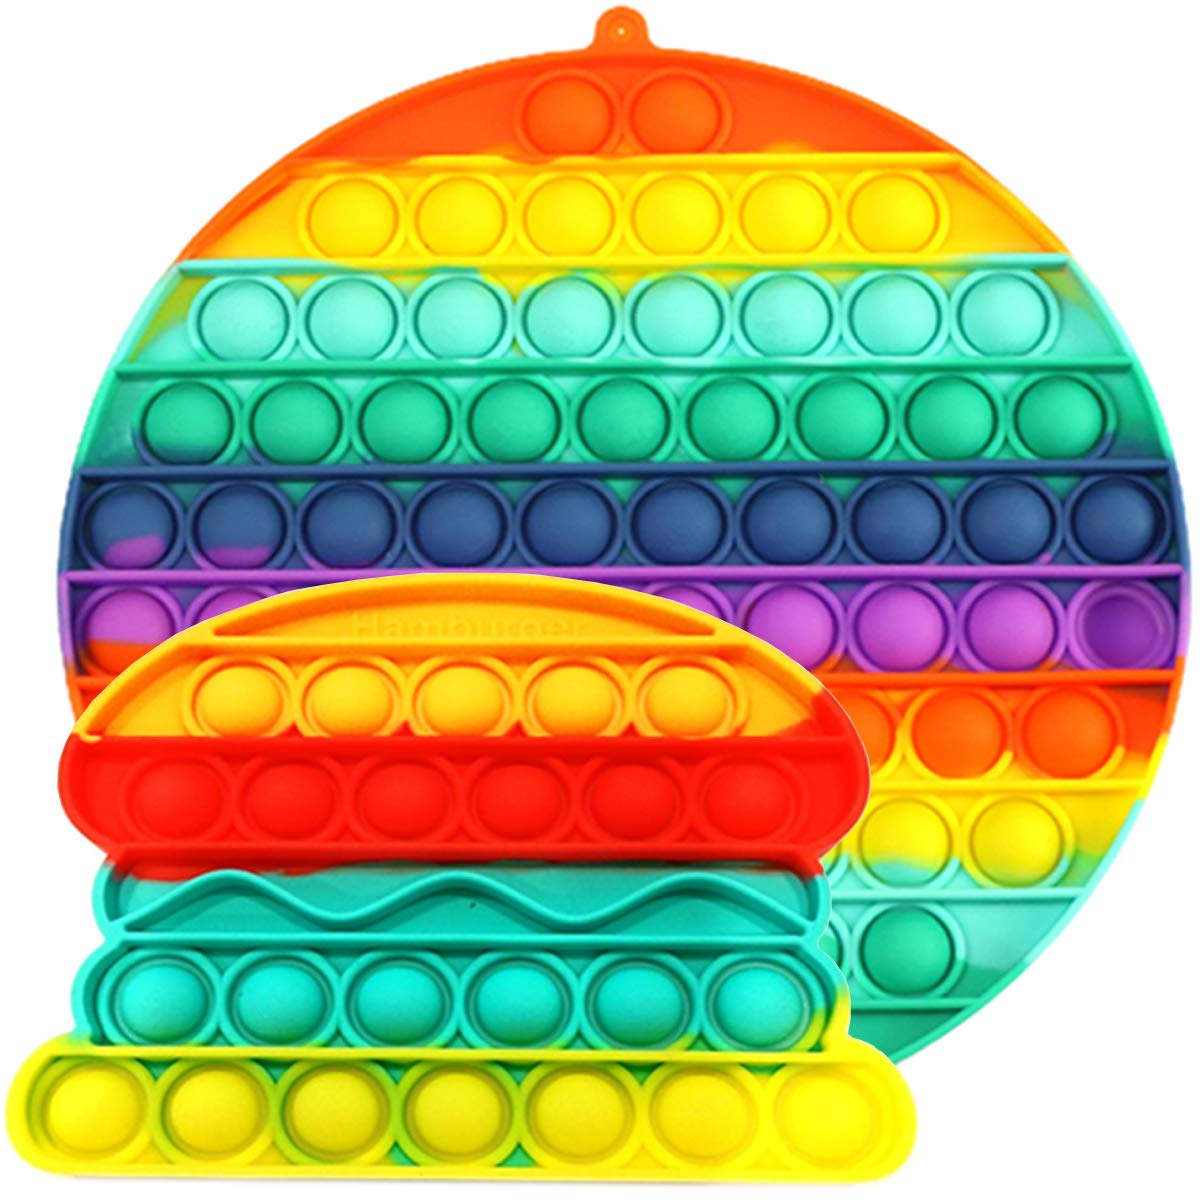 didaINT Real Big Size Fidget Bubbles Rainbow Circle Pack with Hamburger 200mm 70pops Special for mutiplayer